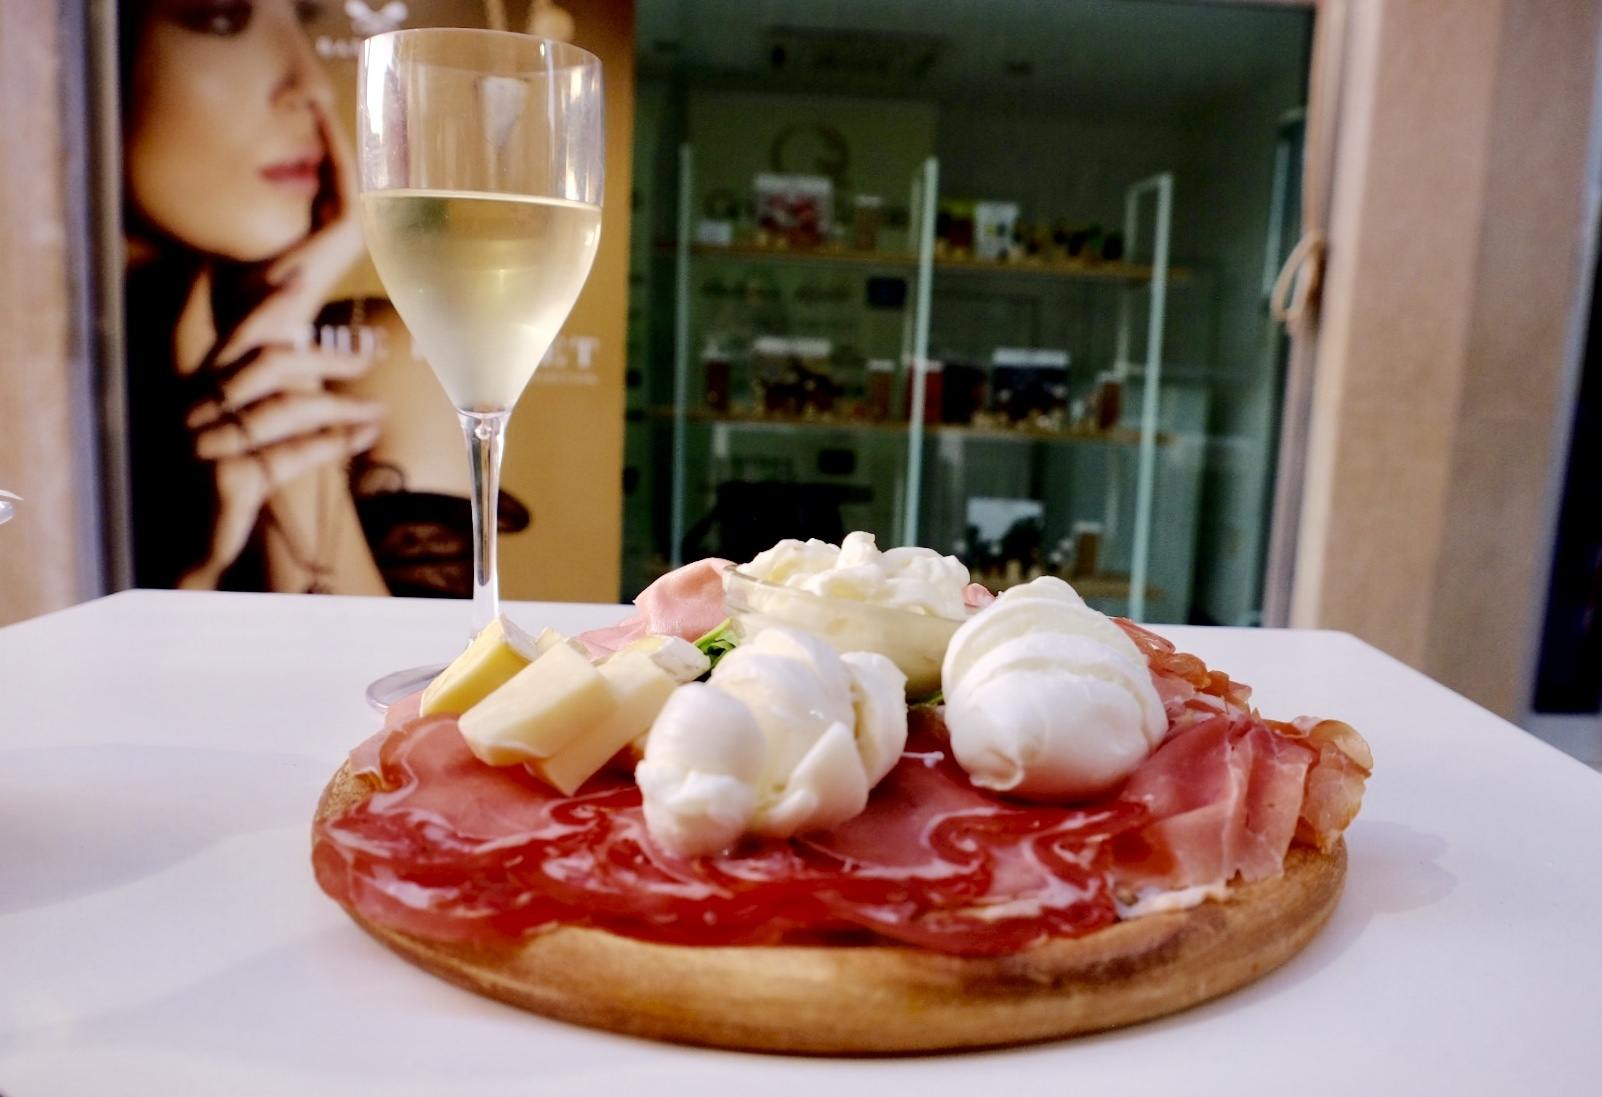 A glass of sparkling white wine next to a tangliere (plate of meat and cheese) in Lecce, Italy: topped with several kinds of ham, burrata mozzarella, and other hams and cheeses.